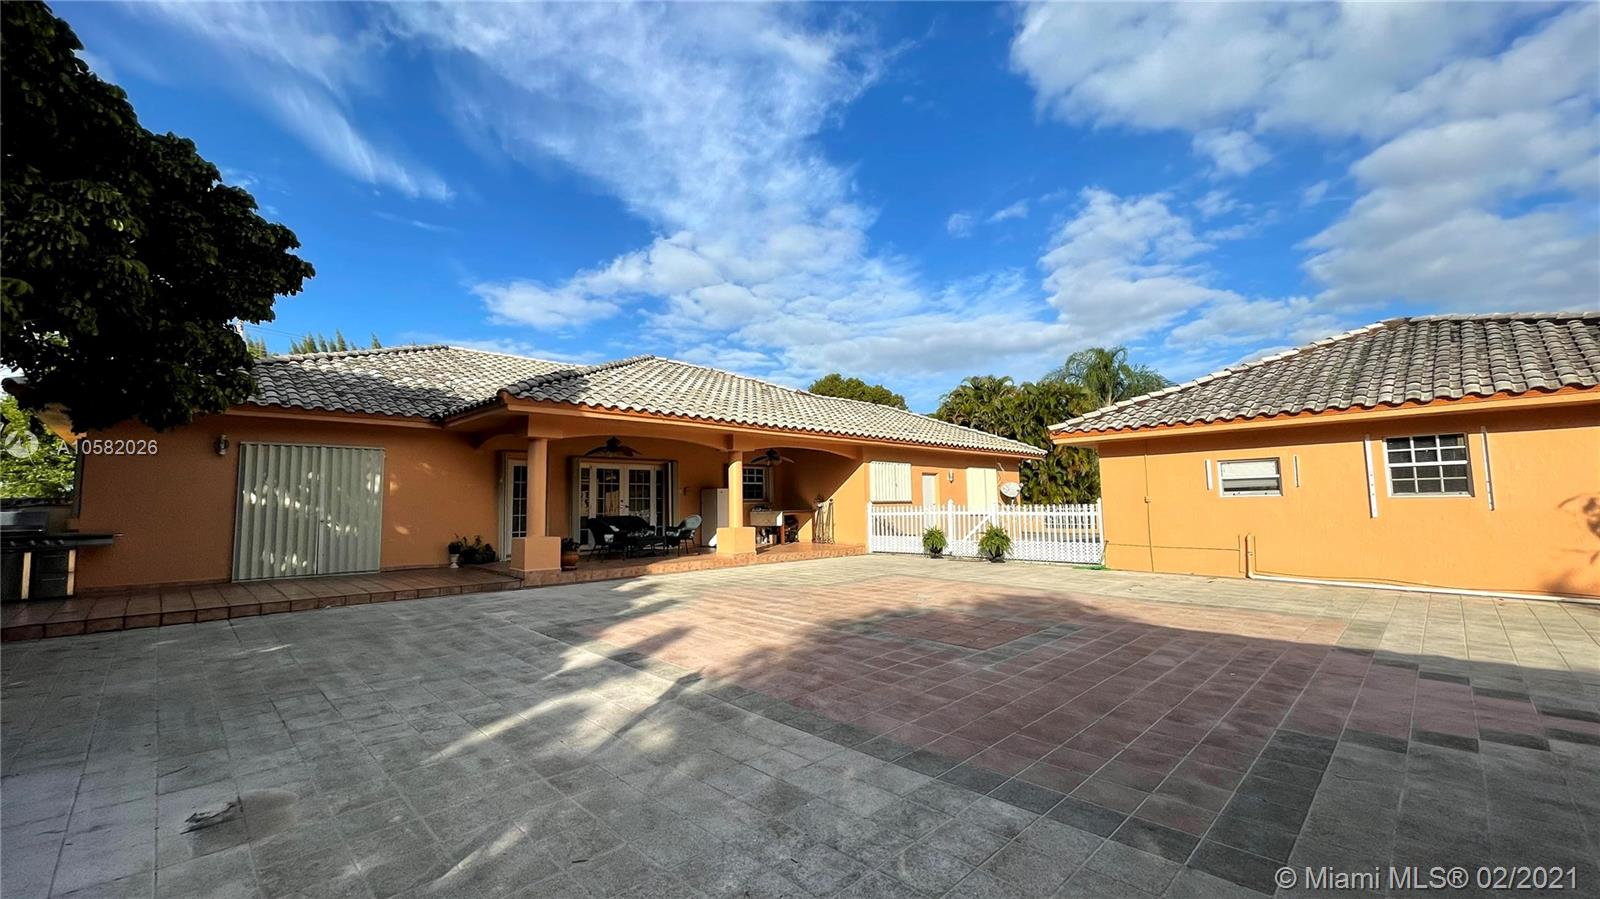 14136 SW 14th St, Davie, Florida 33325, 6 Bedrooms Bedrooms, ,6 BathroomsBathrooms,Residential,For Sale,14136 SW 14th St,A10582026